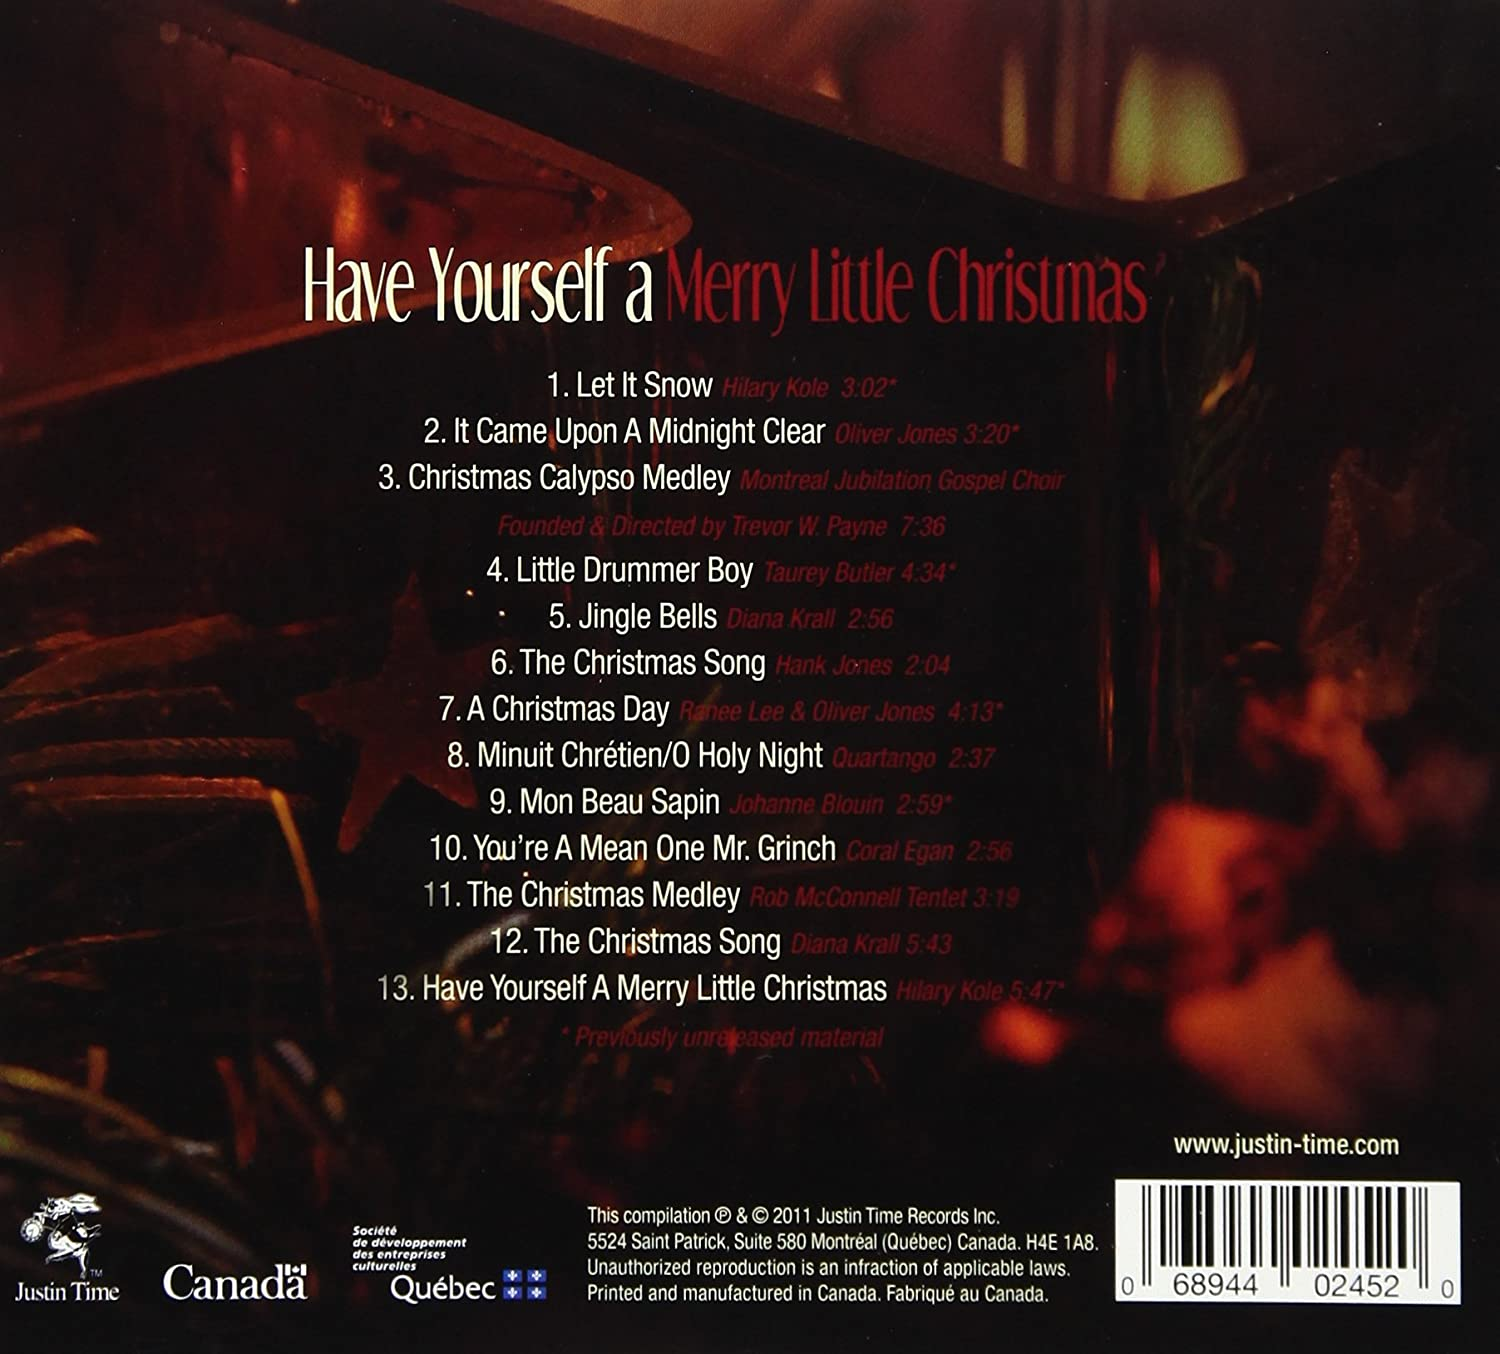 Merry Little Christmas 2011.Have Yourself A Merry Little Christmas Have Yourself A